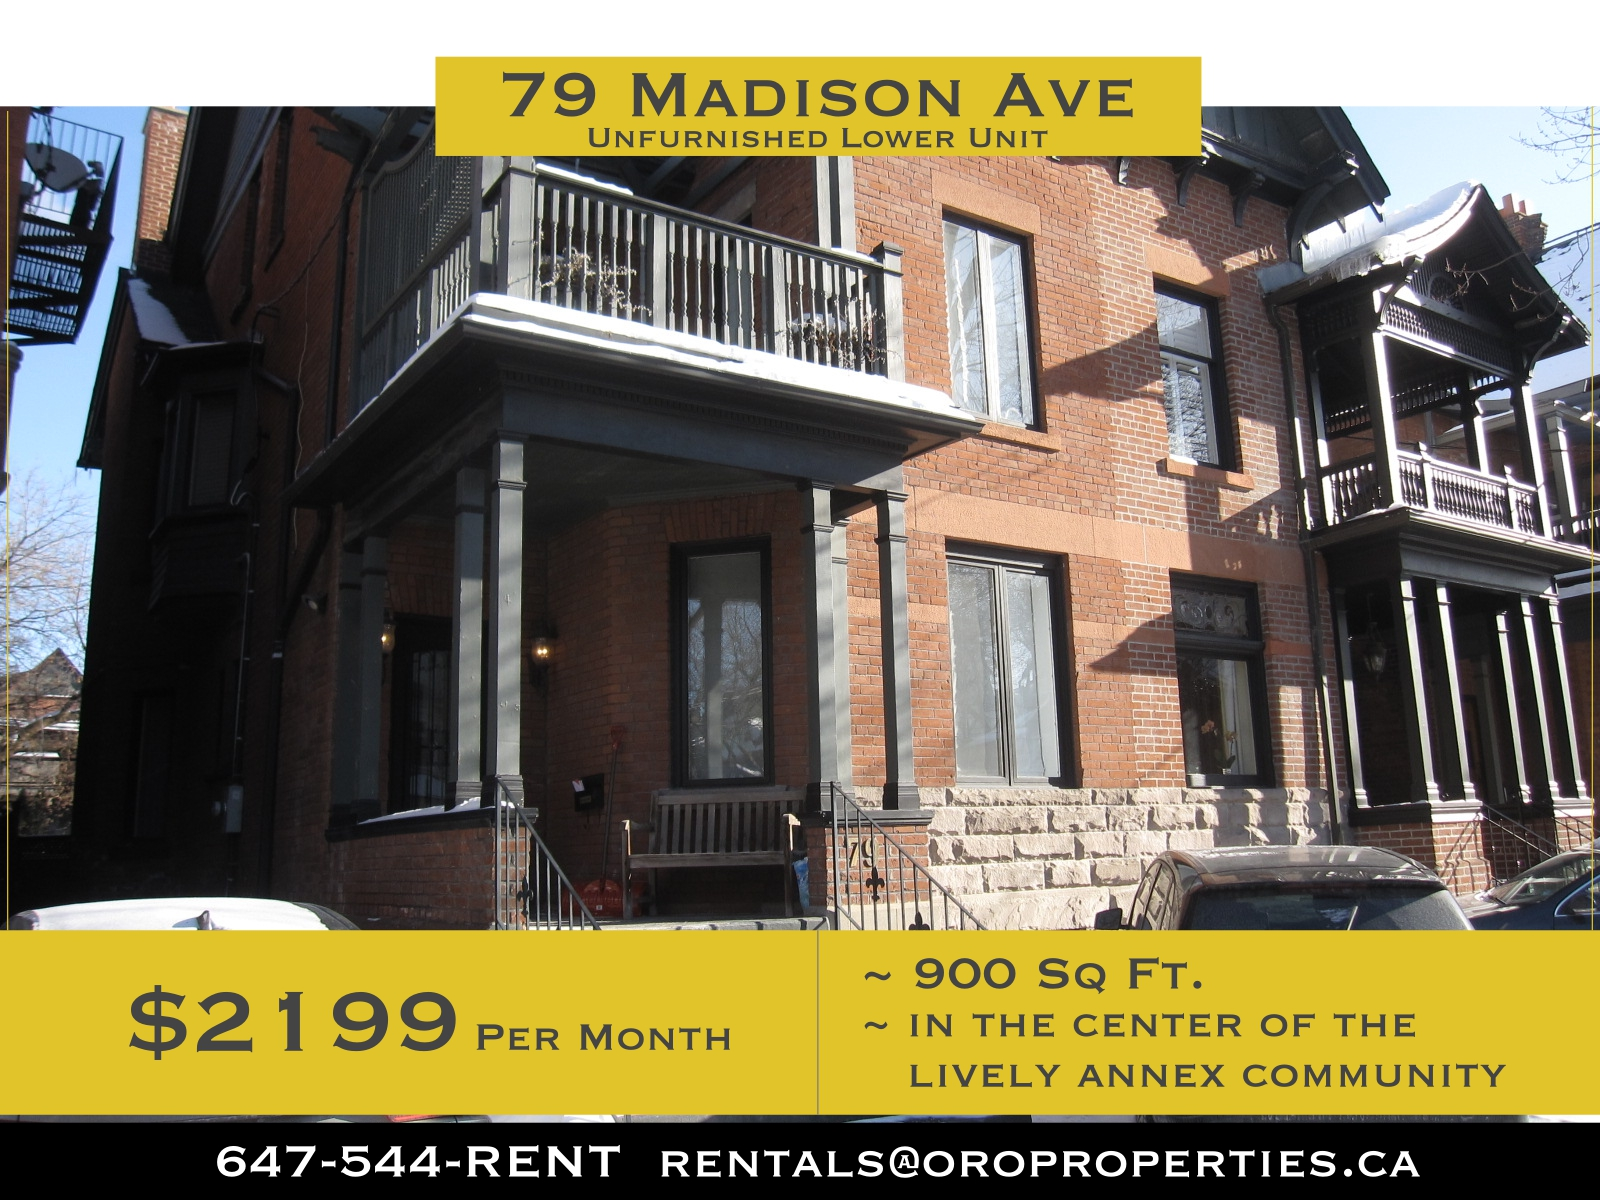 79 Madison Avenue – Charming Newly Renovated 1 Bedroom + Den Lowe Level Suite in The Annex